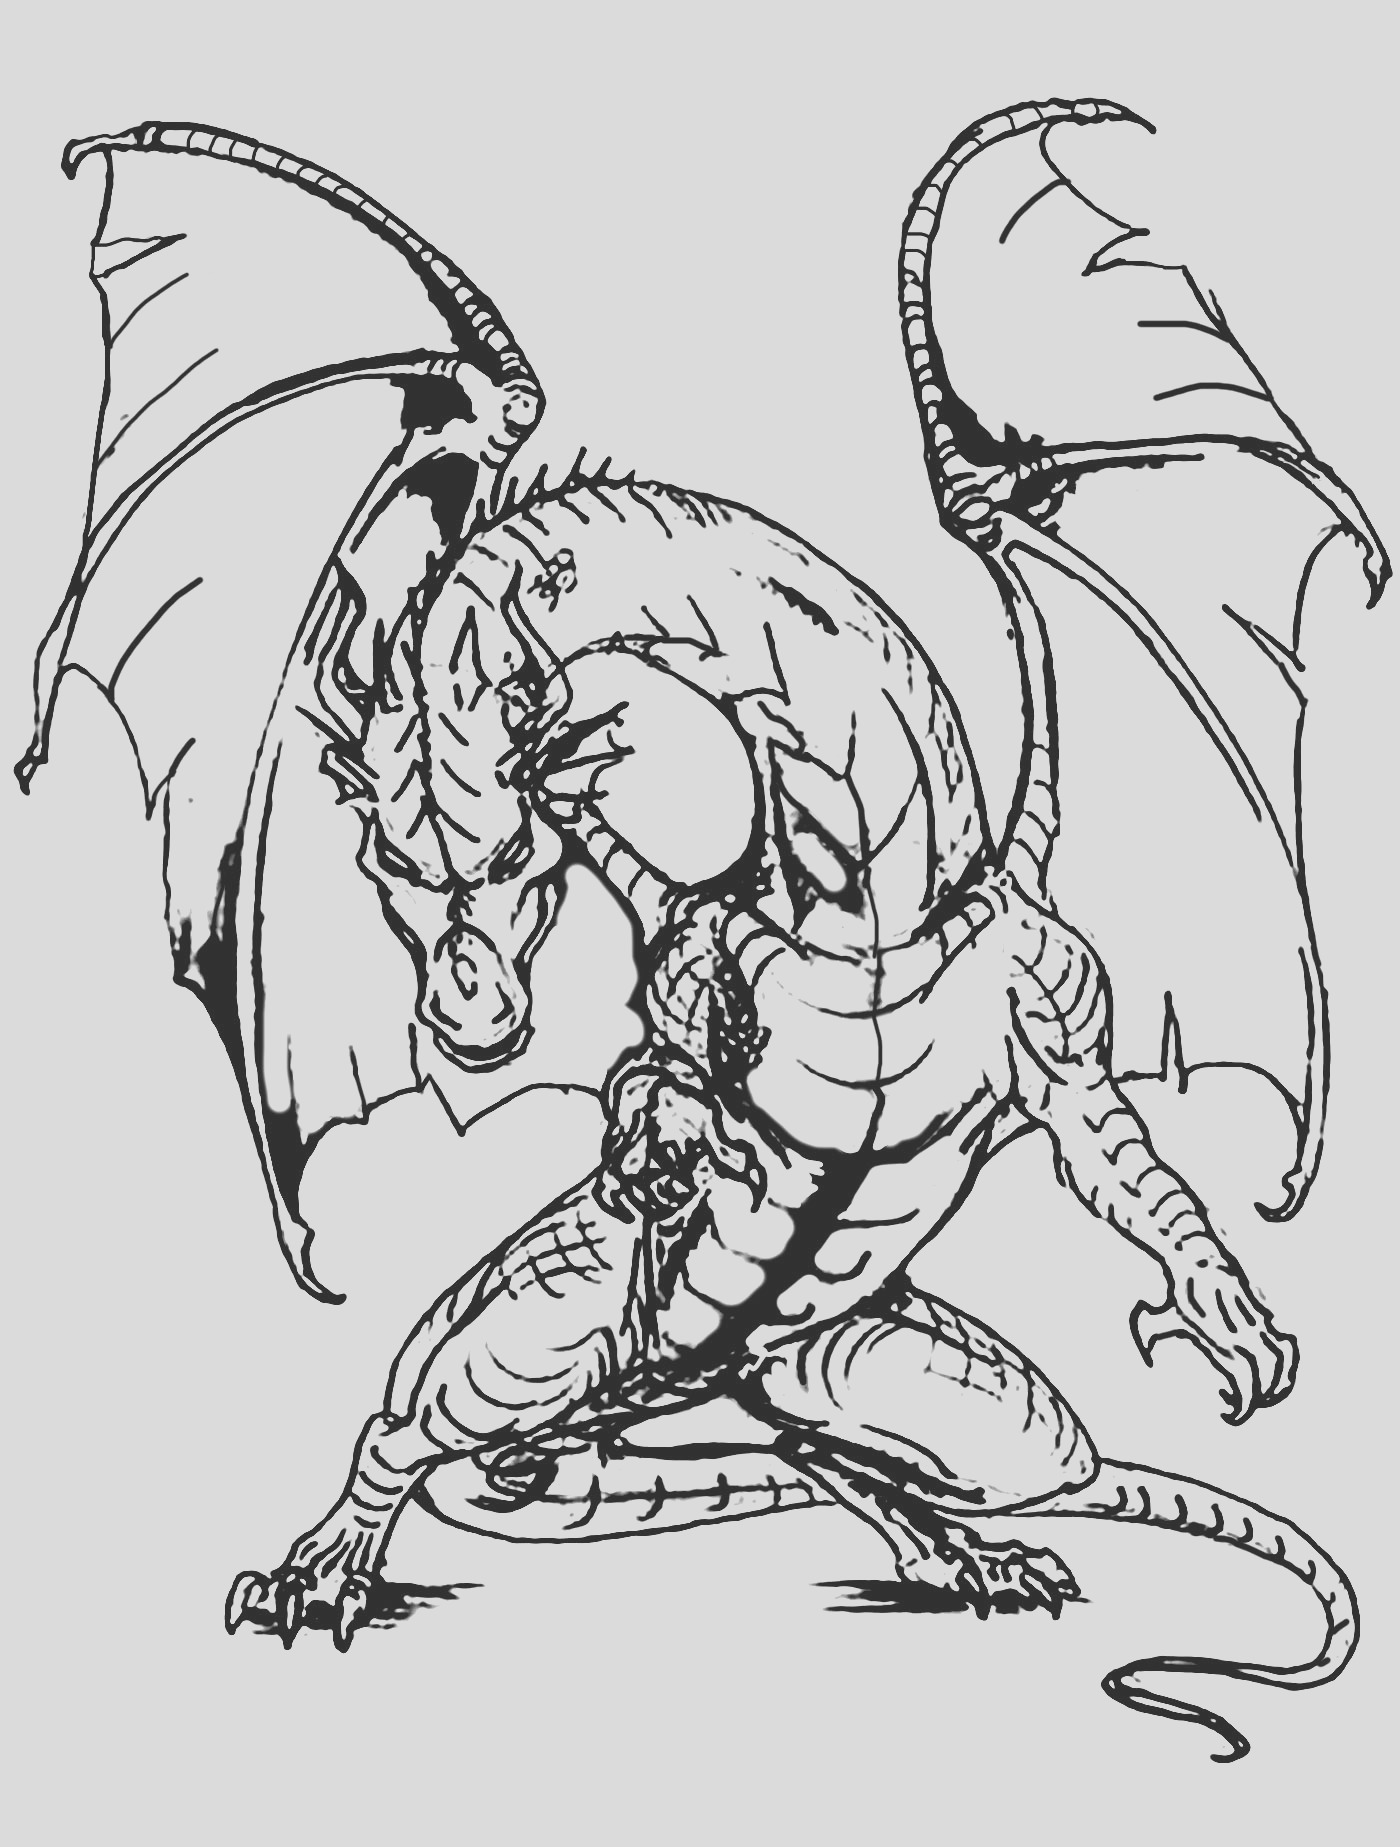 image=dragons coloring page giant dragon 1